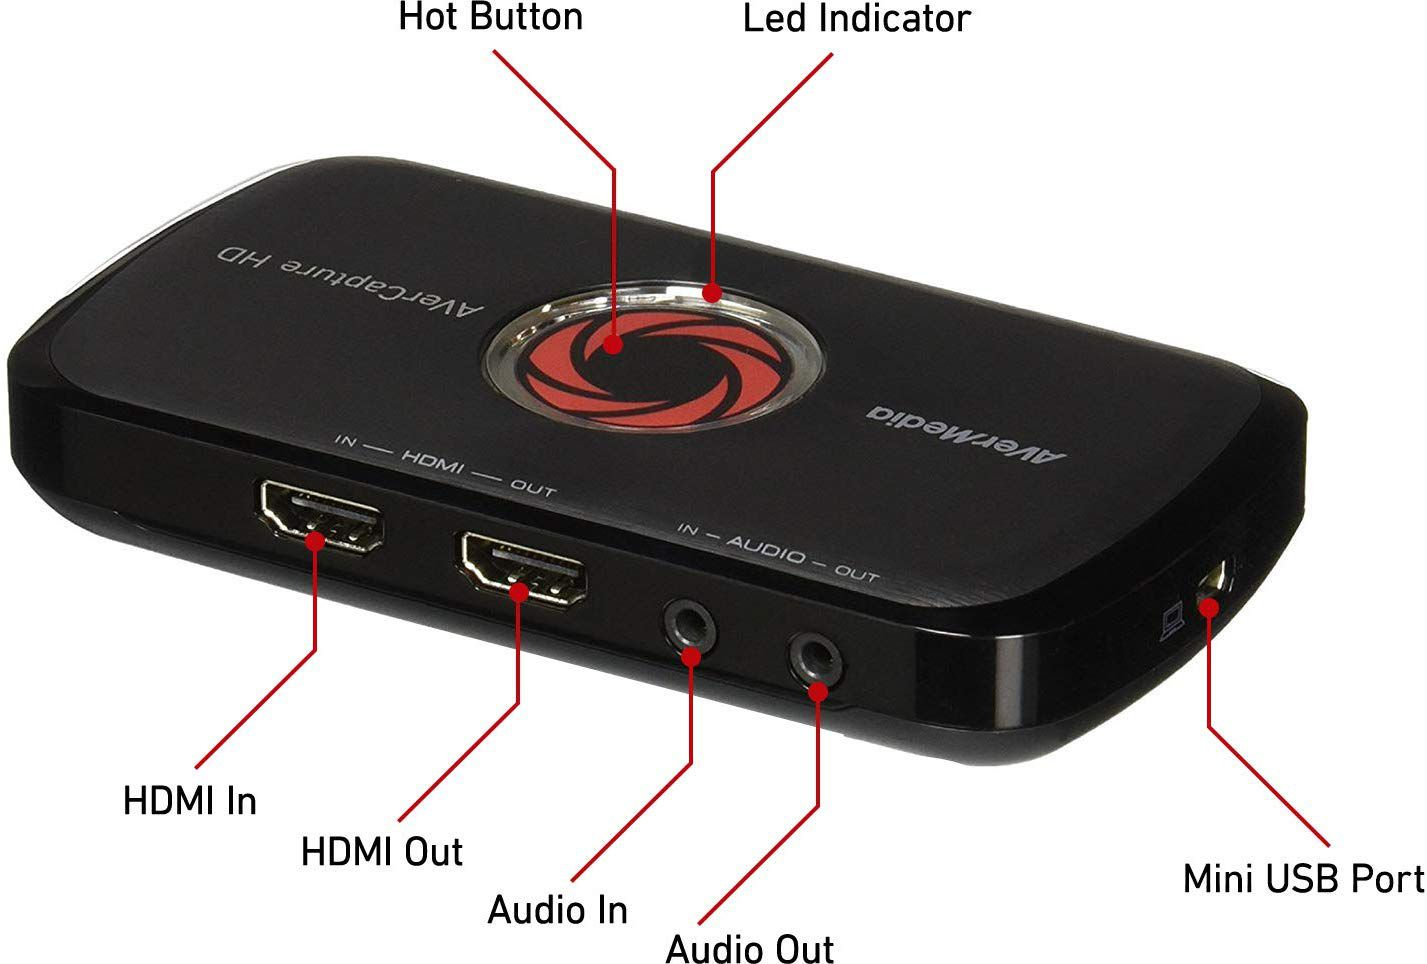 AVerMedia AVerCapture HD, Game Streaming and Game Capture, High Definition 1080p, Ultra Low Latency, H.264 Hardware Encoding Game Recorder - USB Video Capture (GL310)